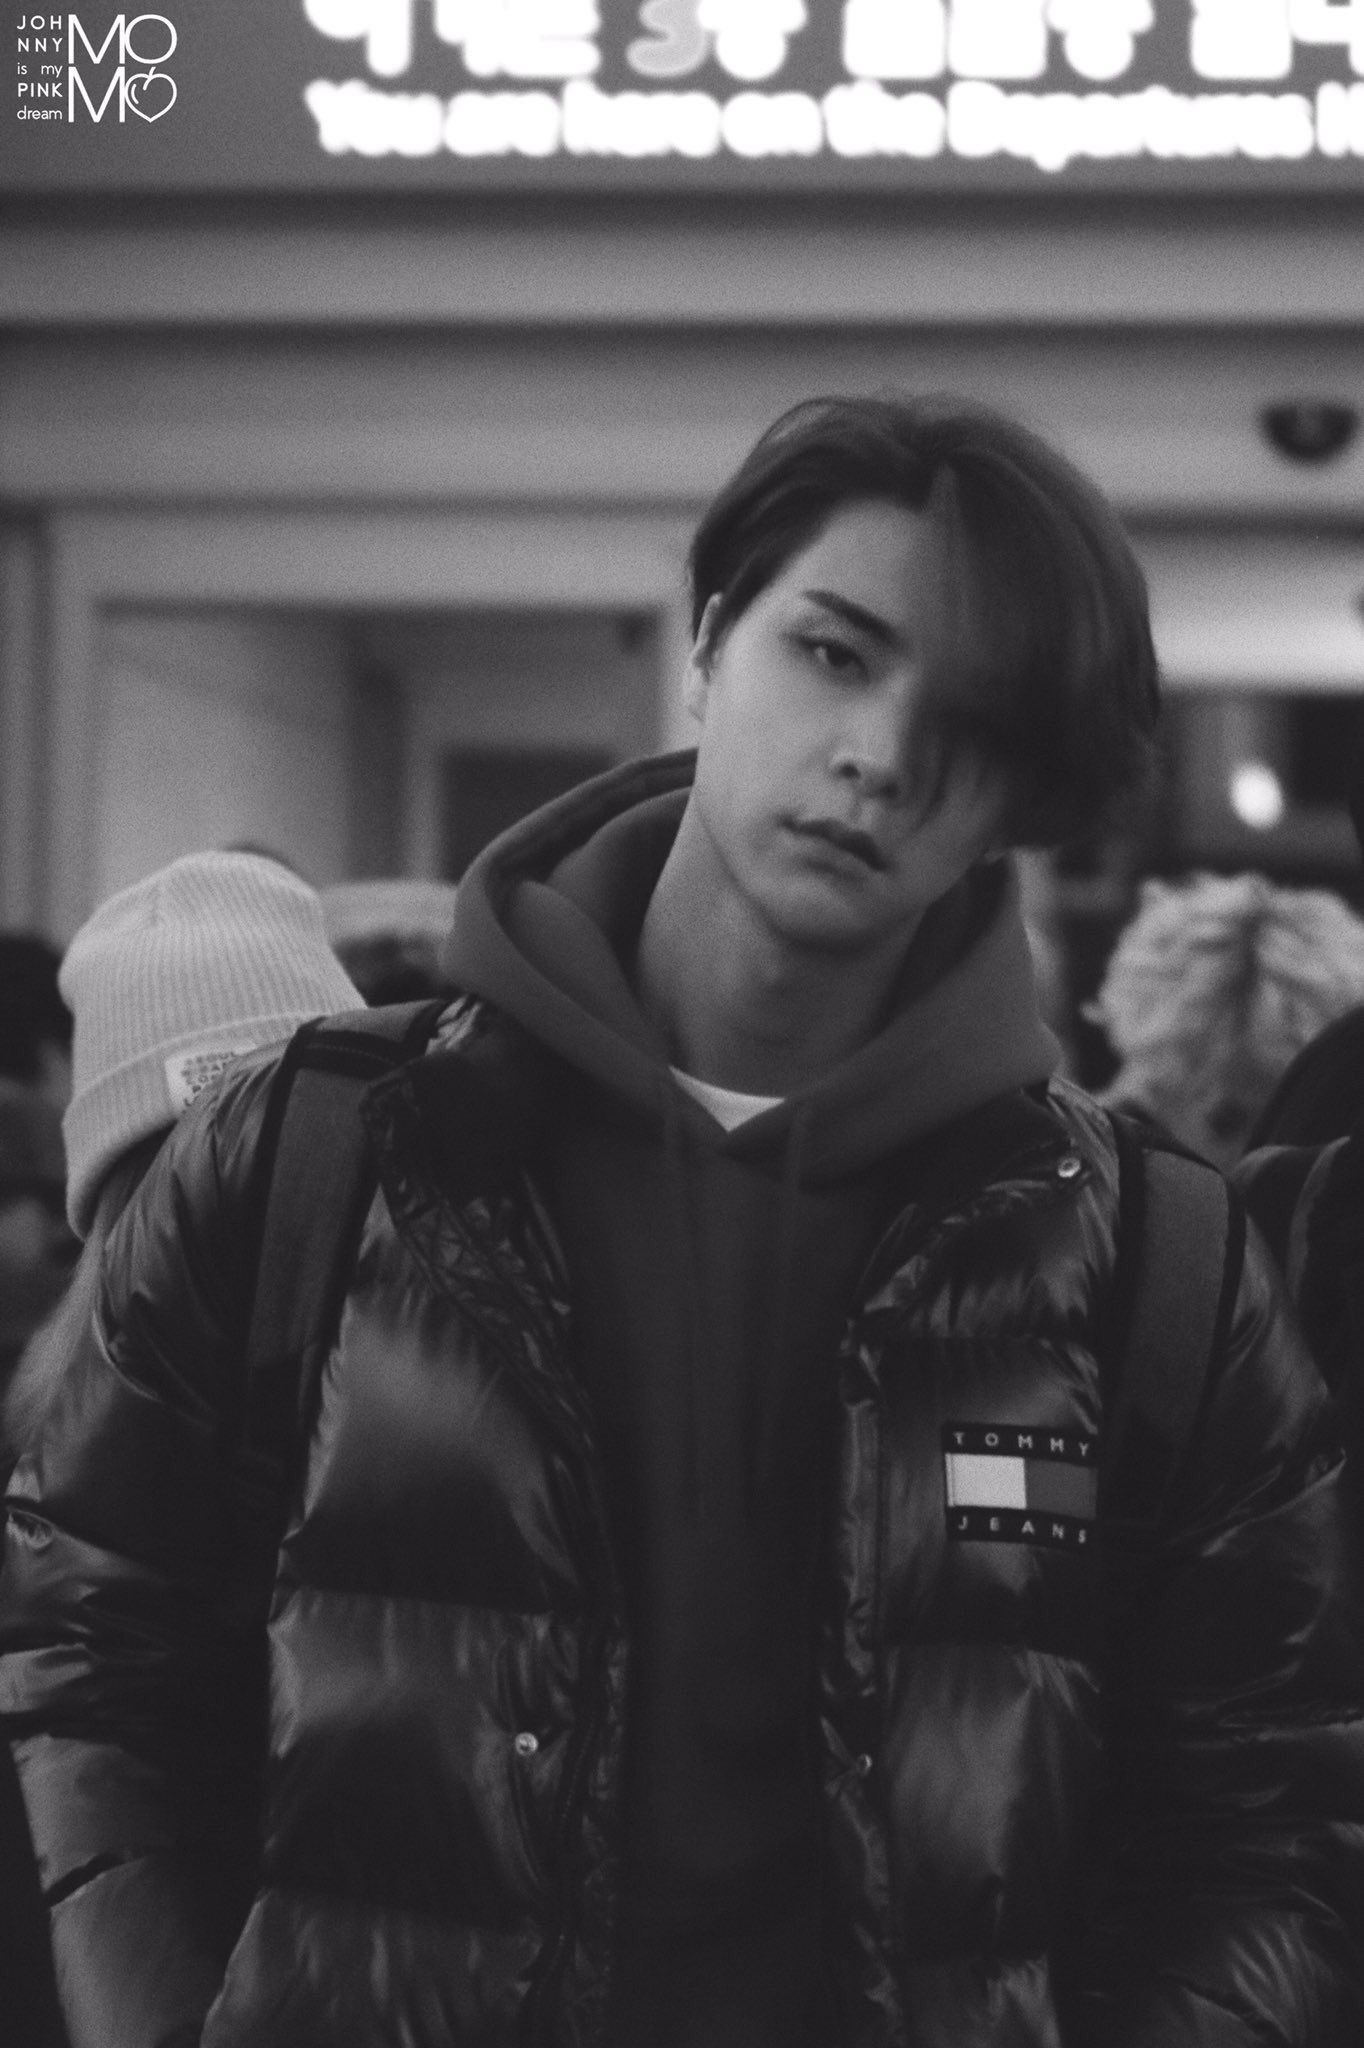 #NCT127 #JOHNNY | #NCT127 #JOHNNY ในปี 2019 | Nct johnny ...